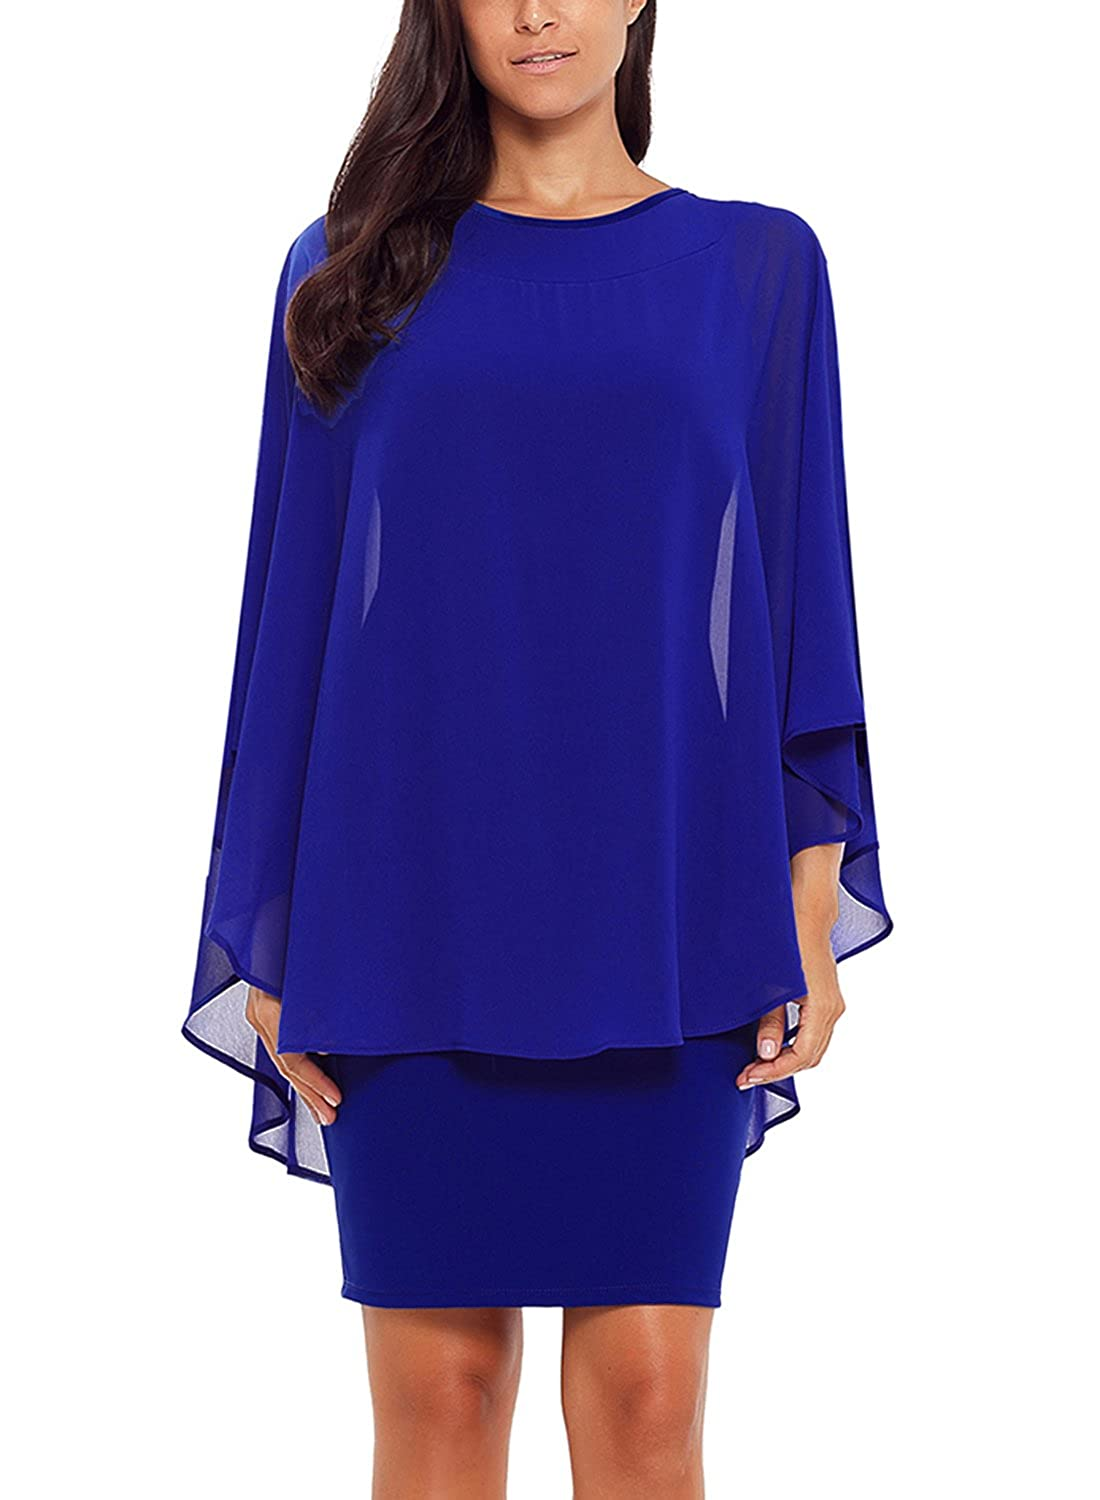 19ba189e3 Top 10 wholesale Discount Plus Size Womens Clothing - Chinabrands.com